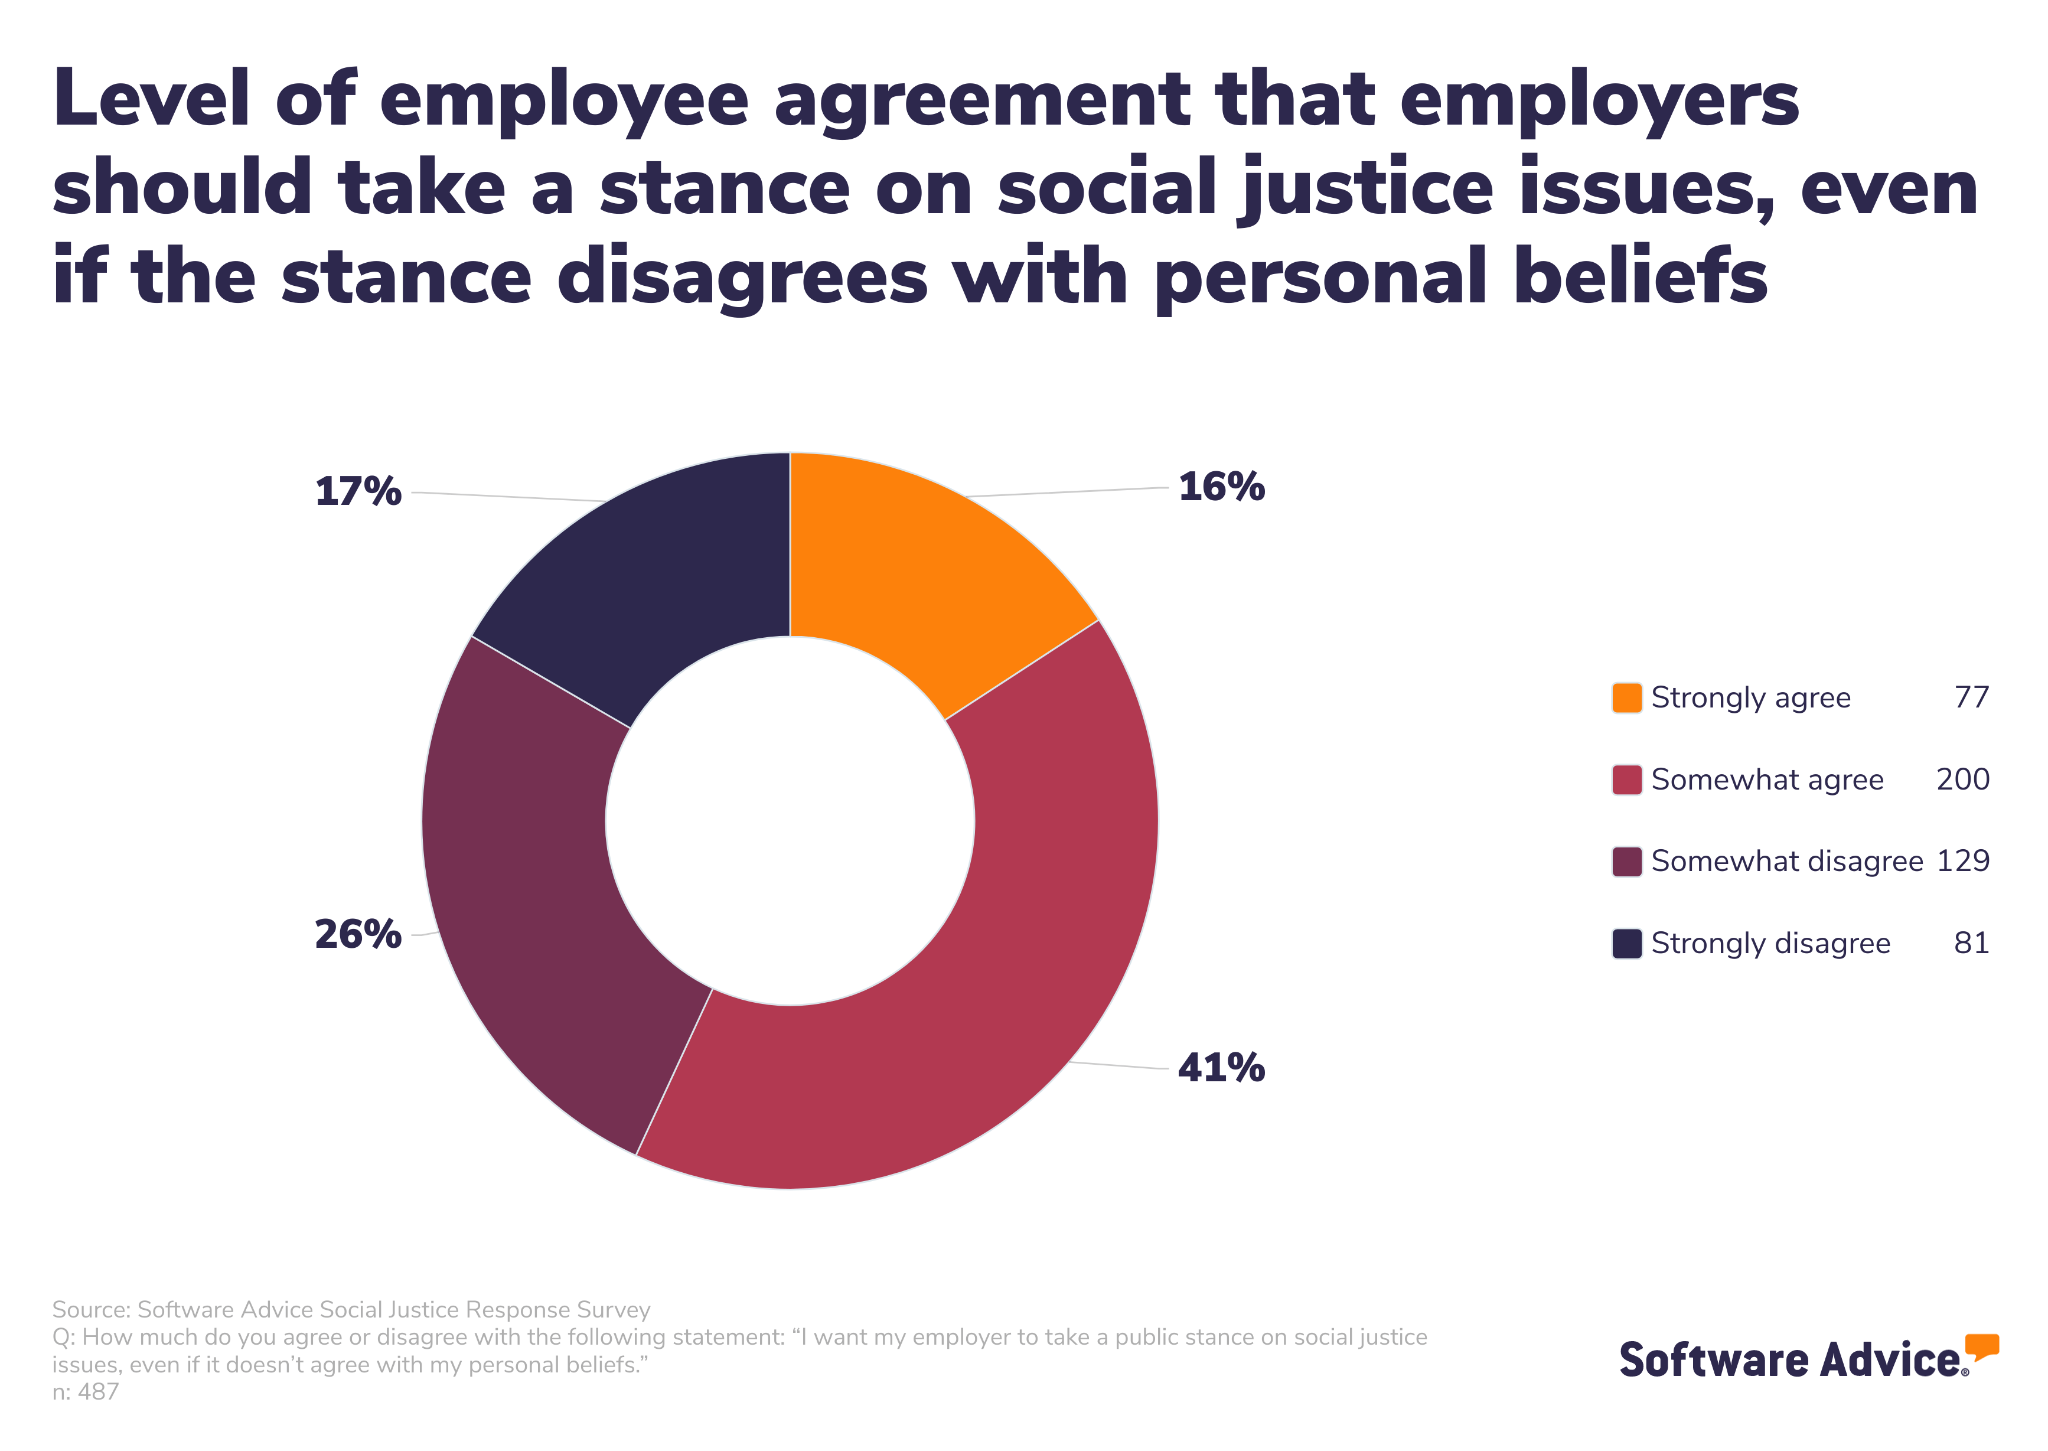 Graph showing the level of employee agreement with the fact that employers should take a stance on social justice issues even if that stance disagrees with their own personal beliefs.